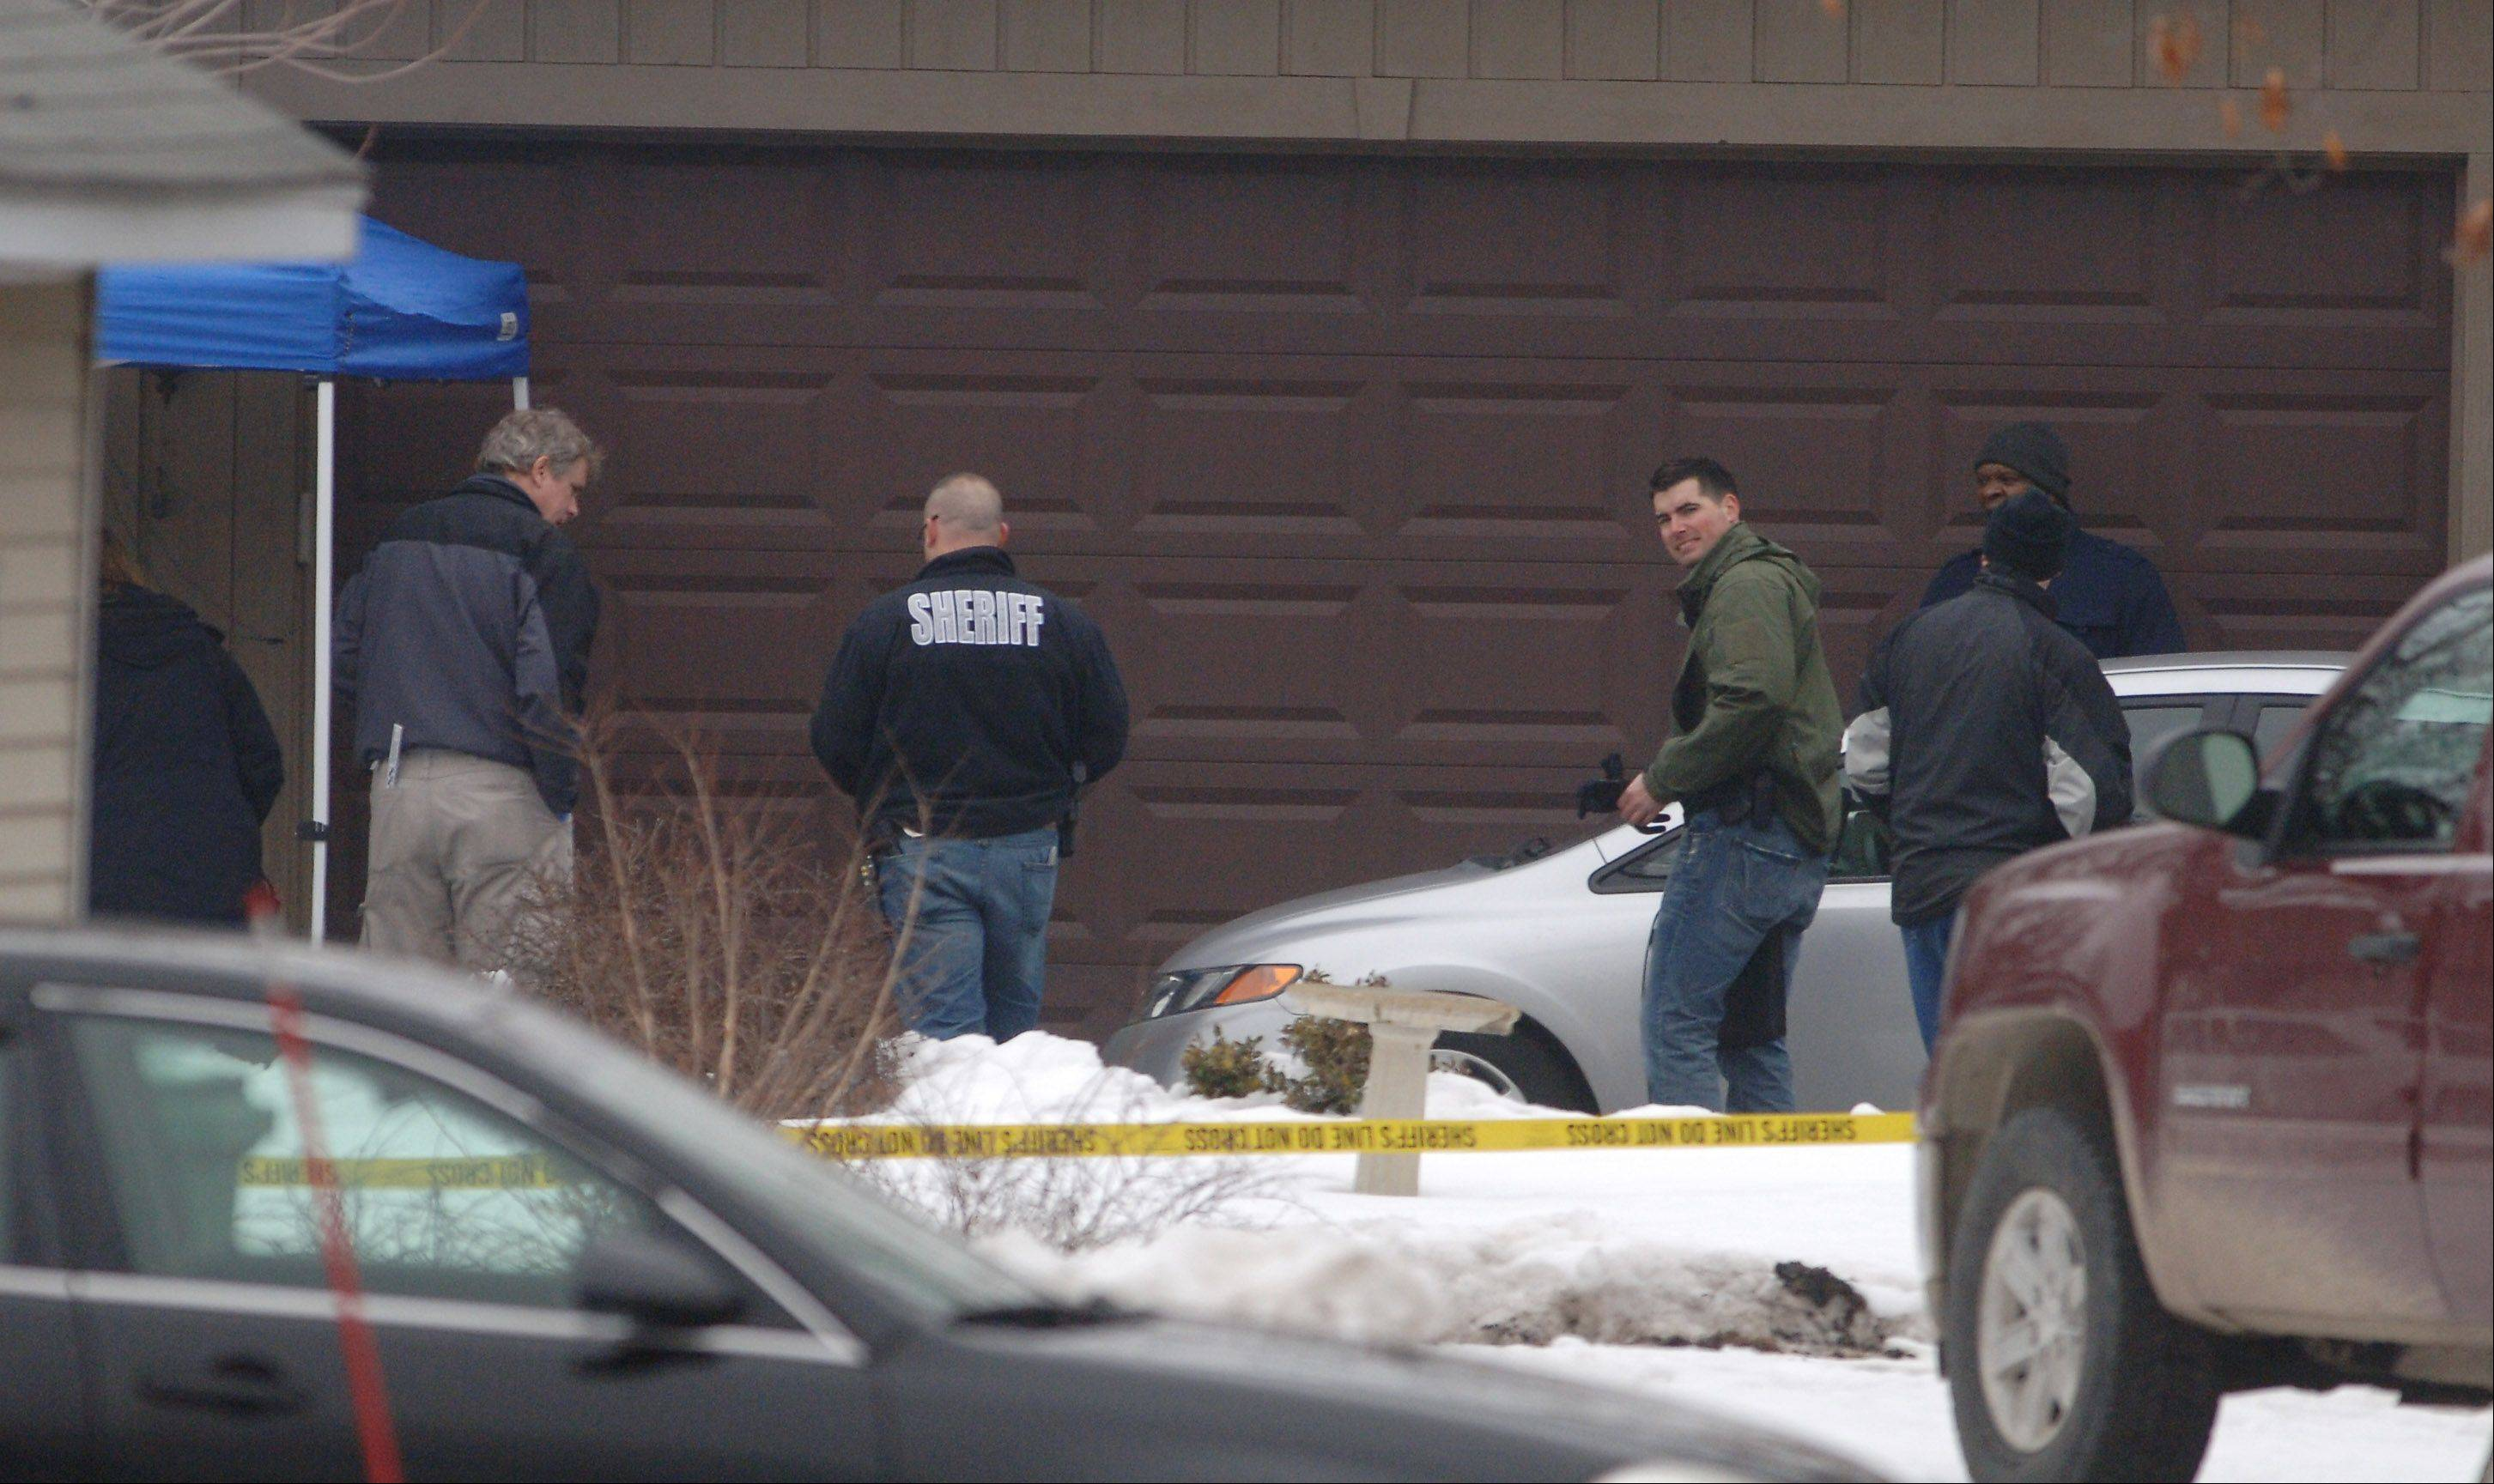 Lake County murders rise to 14 in 2013, but numbers down overall